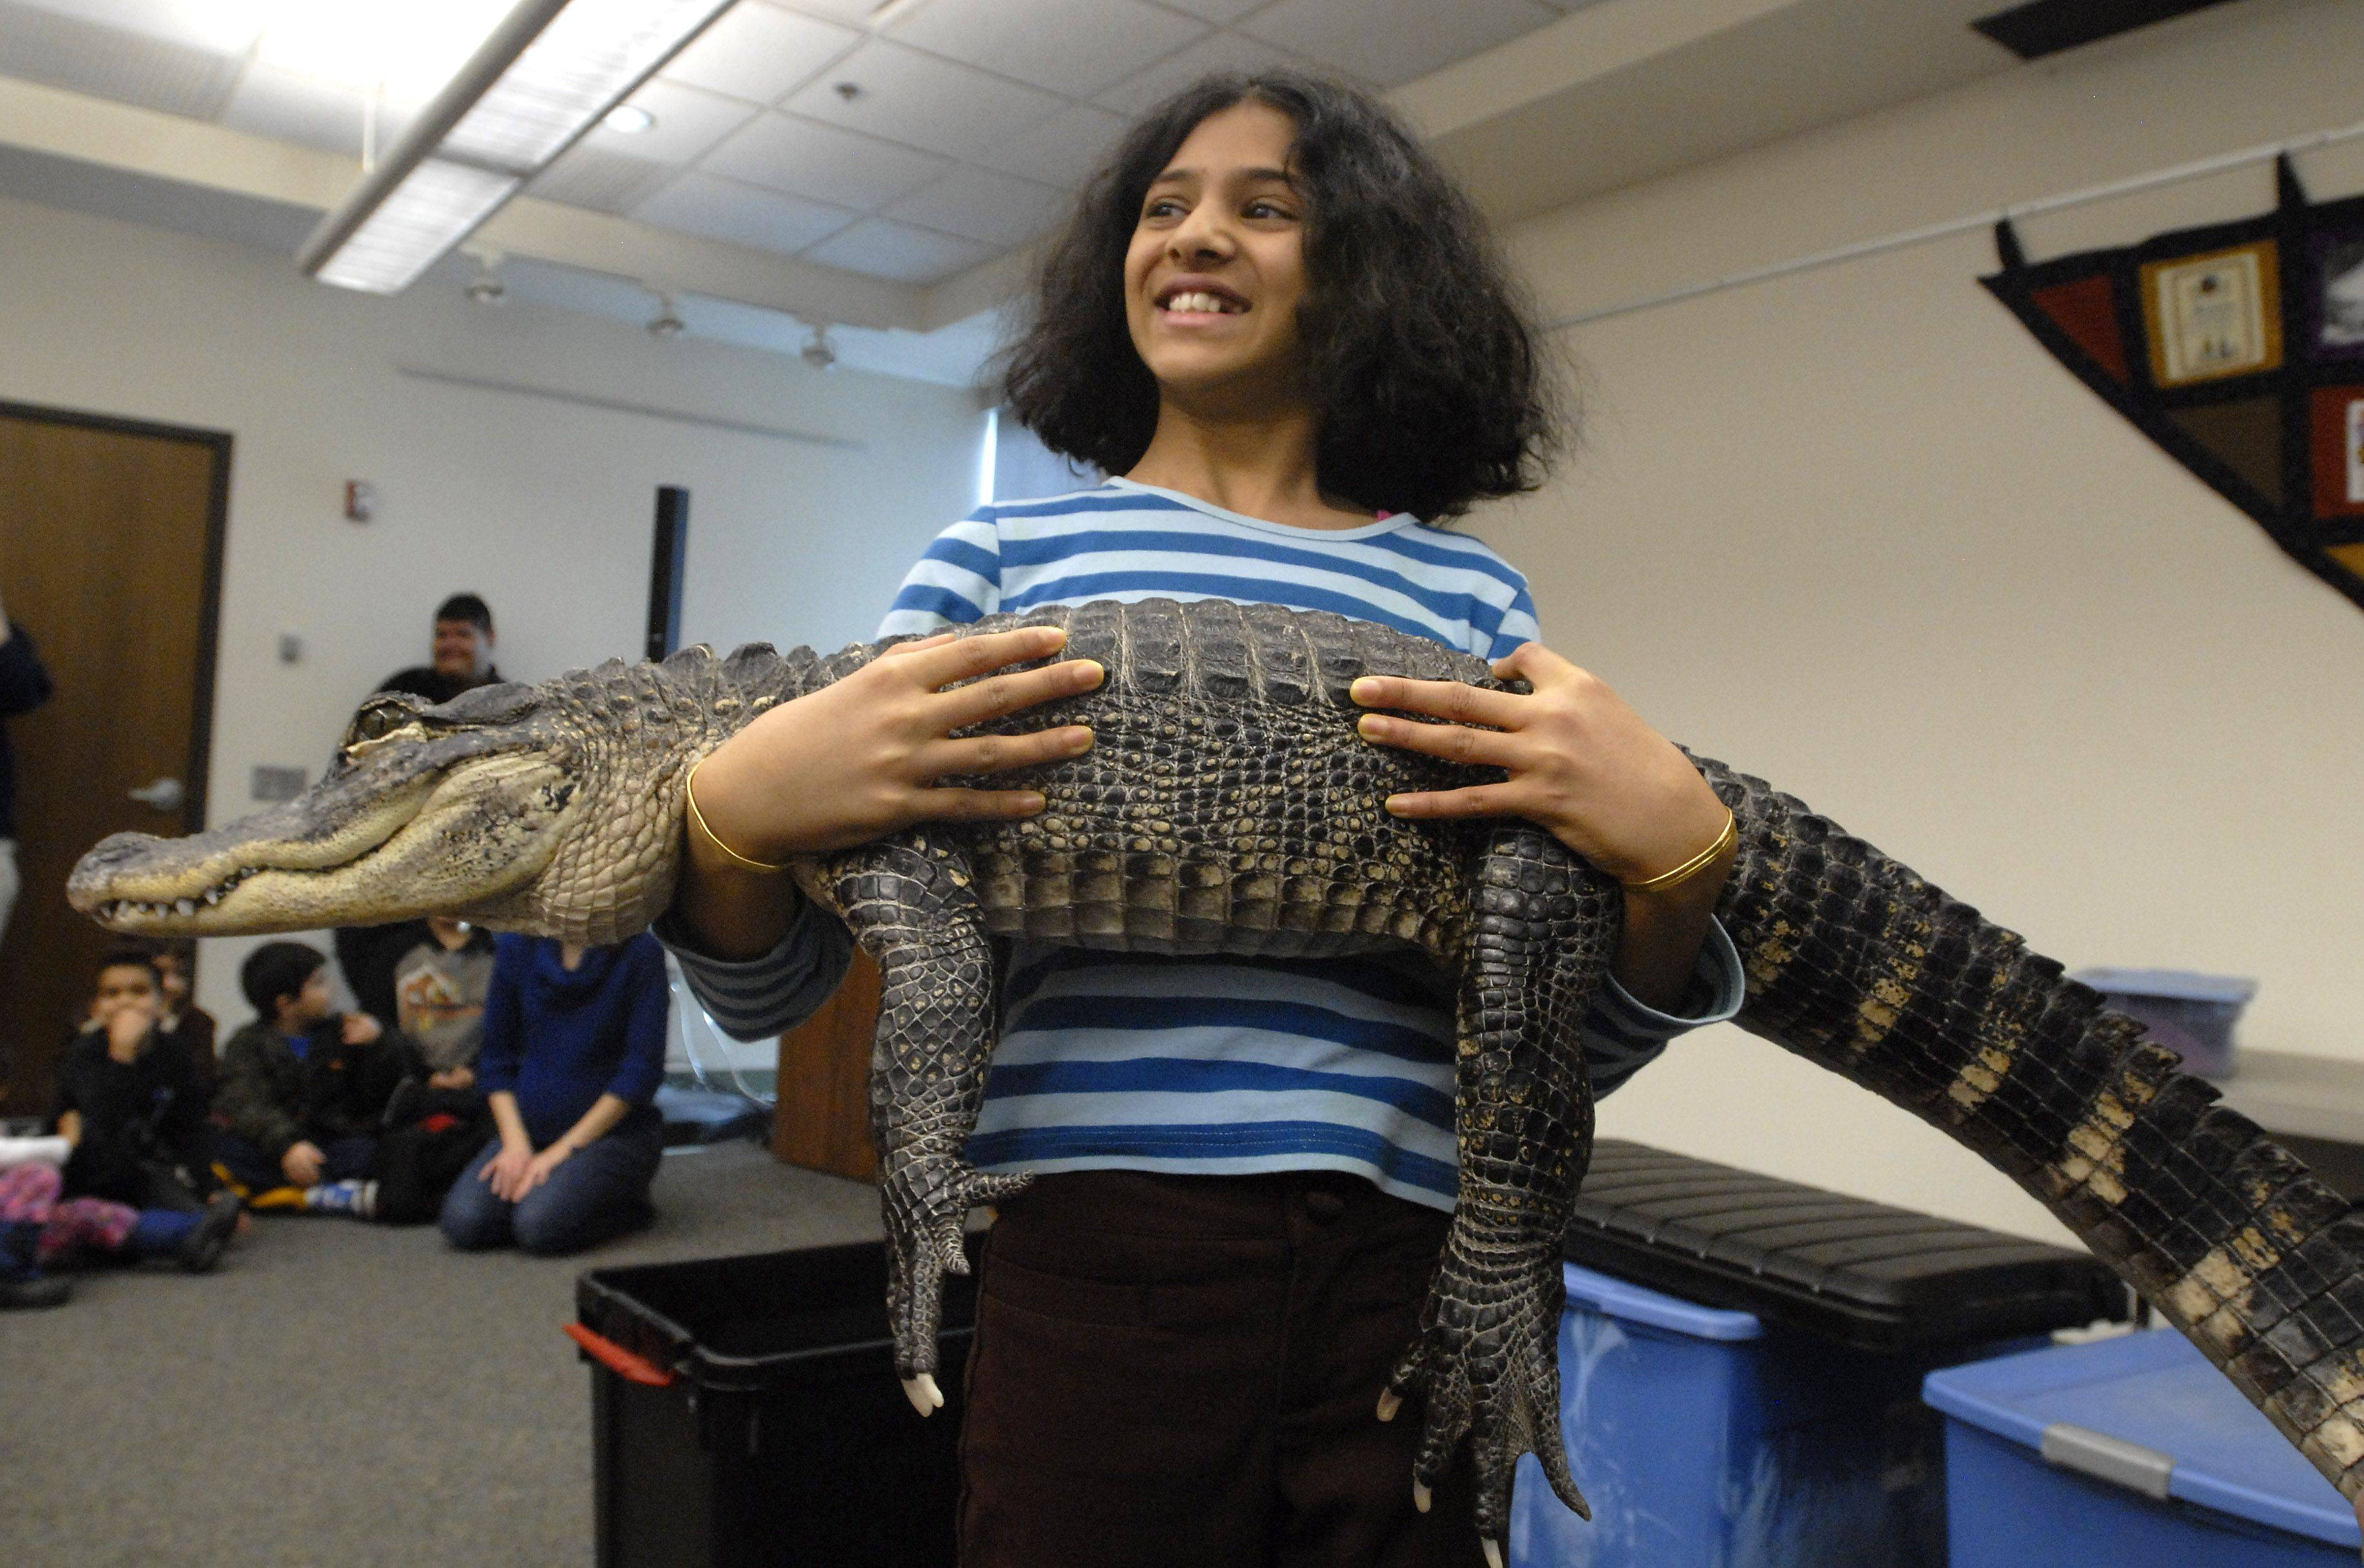 Shreya Sriram, 10, of Buffalo Grove enjoys holding Lucky the American alligator Wednesday at Indian Trails Public Library in Wheeling.